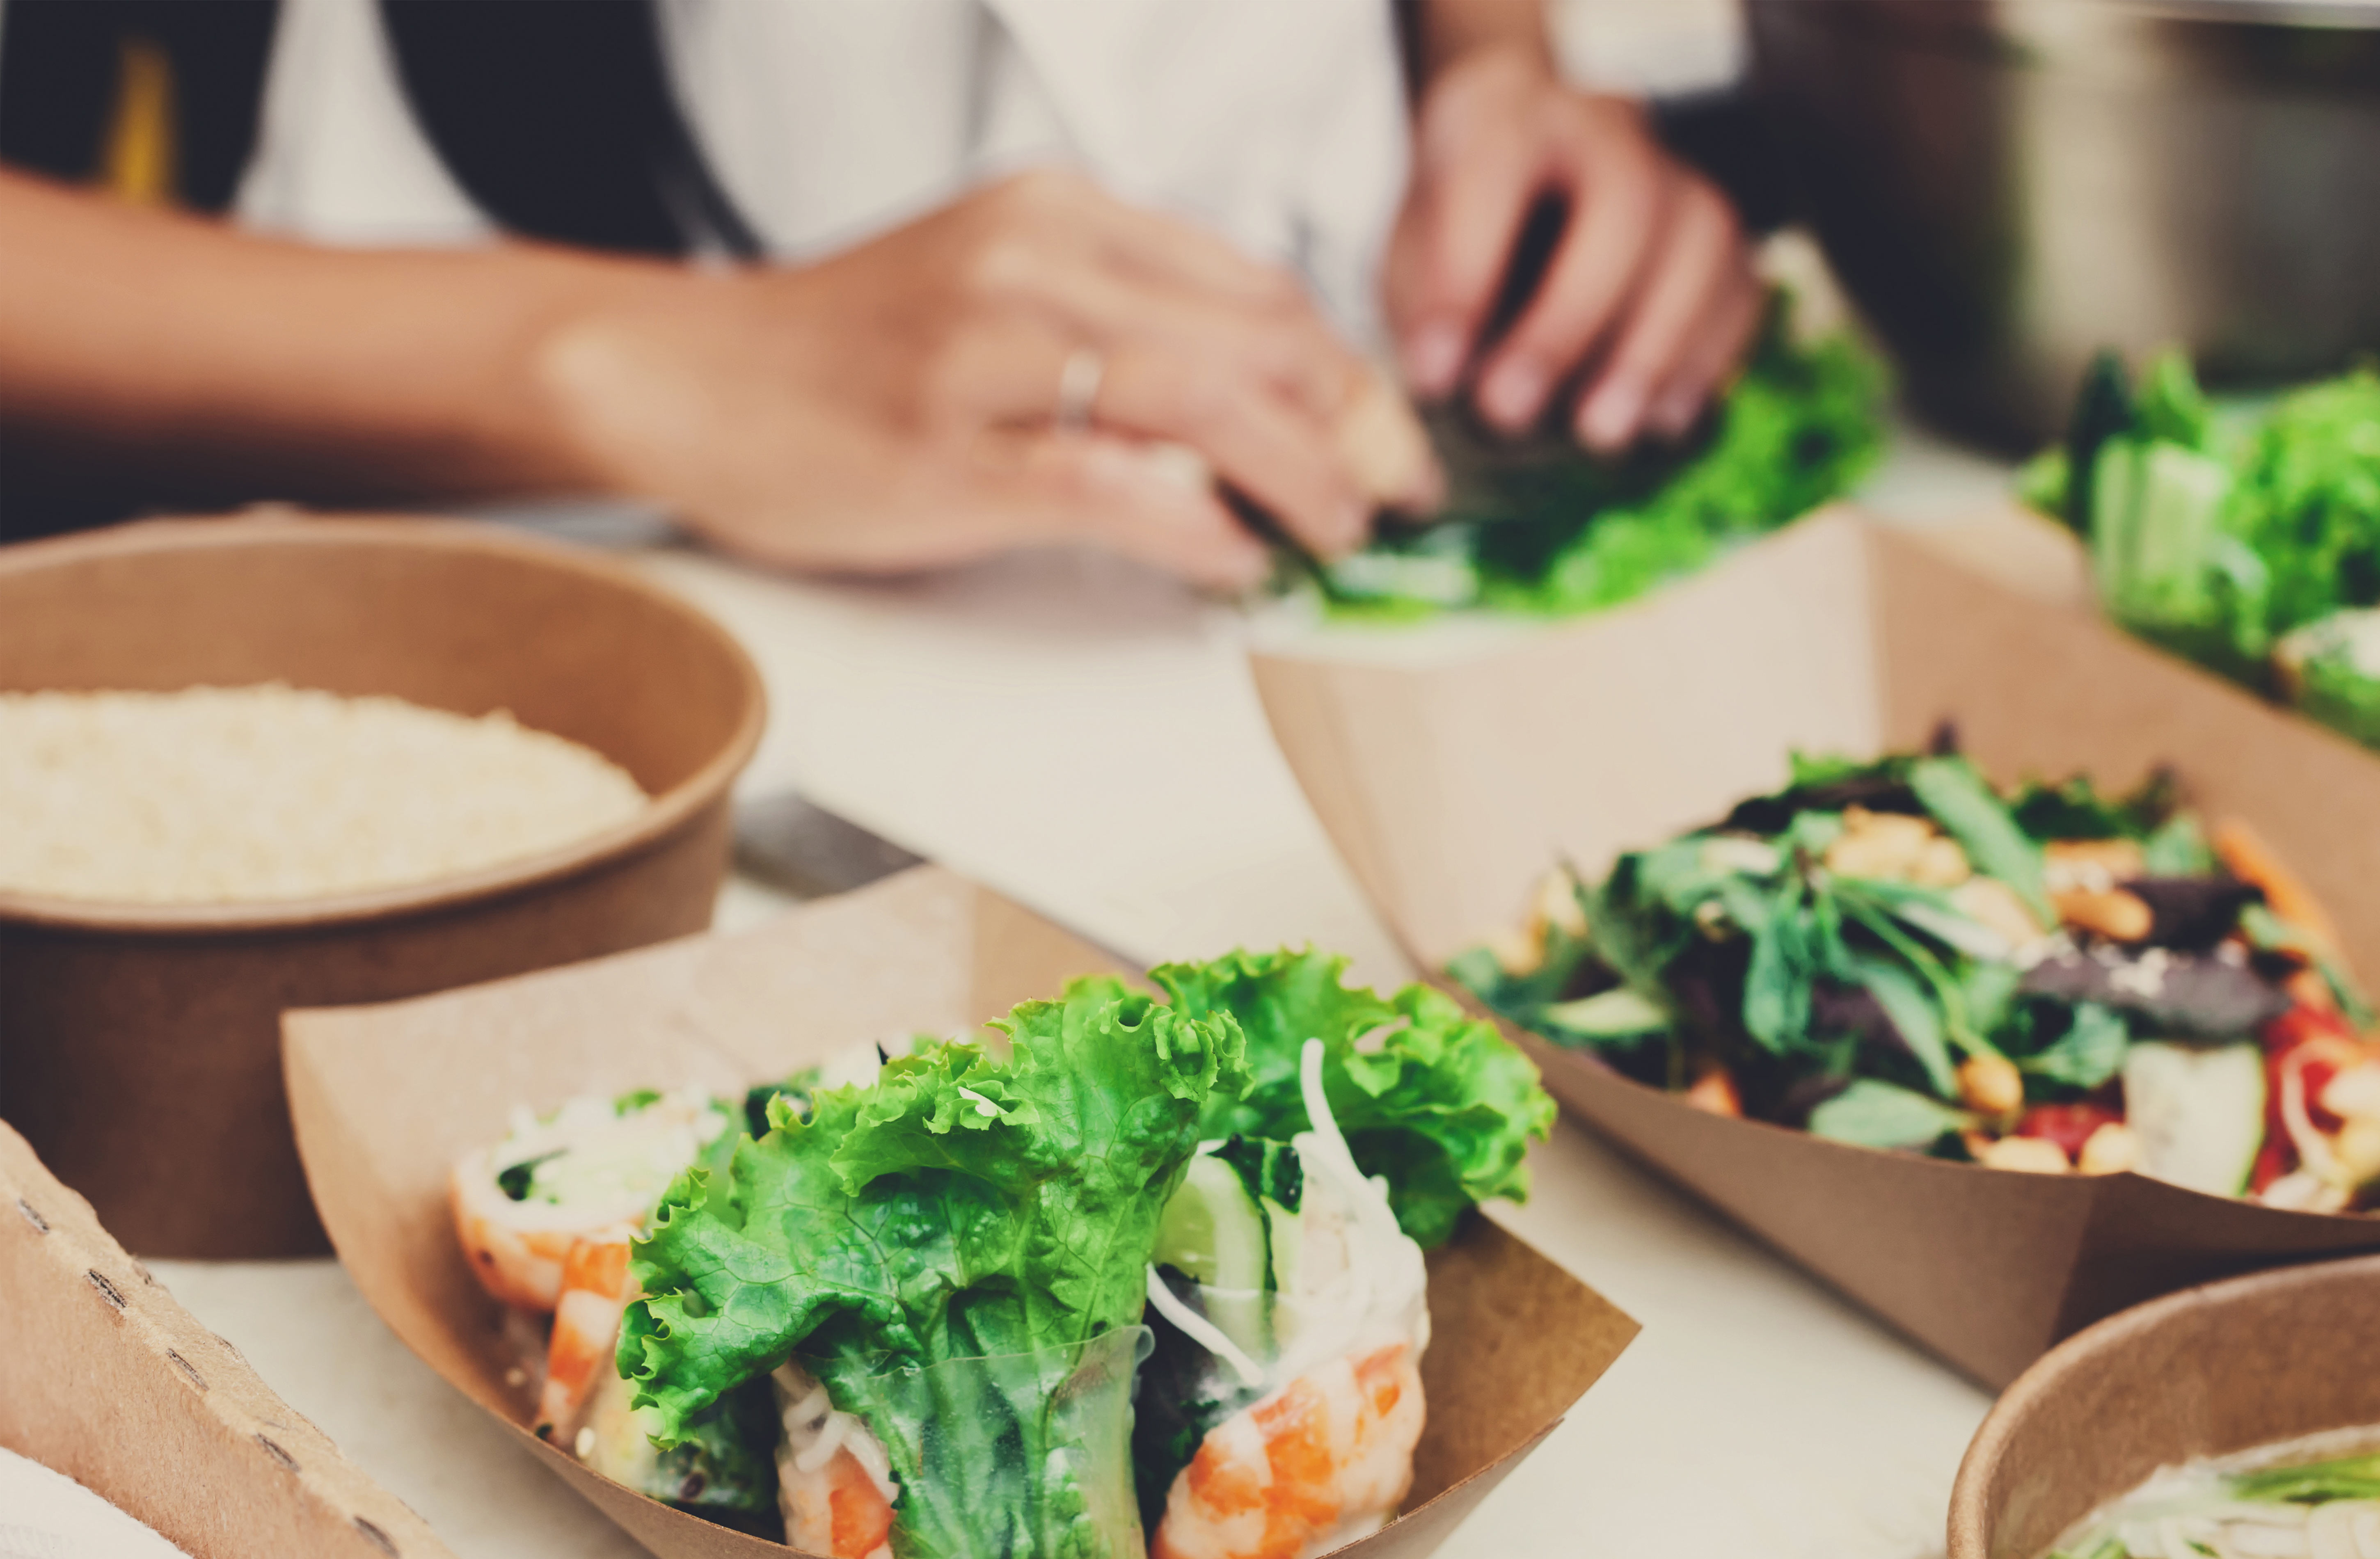 Food Safety for New Zealand businesses